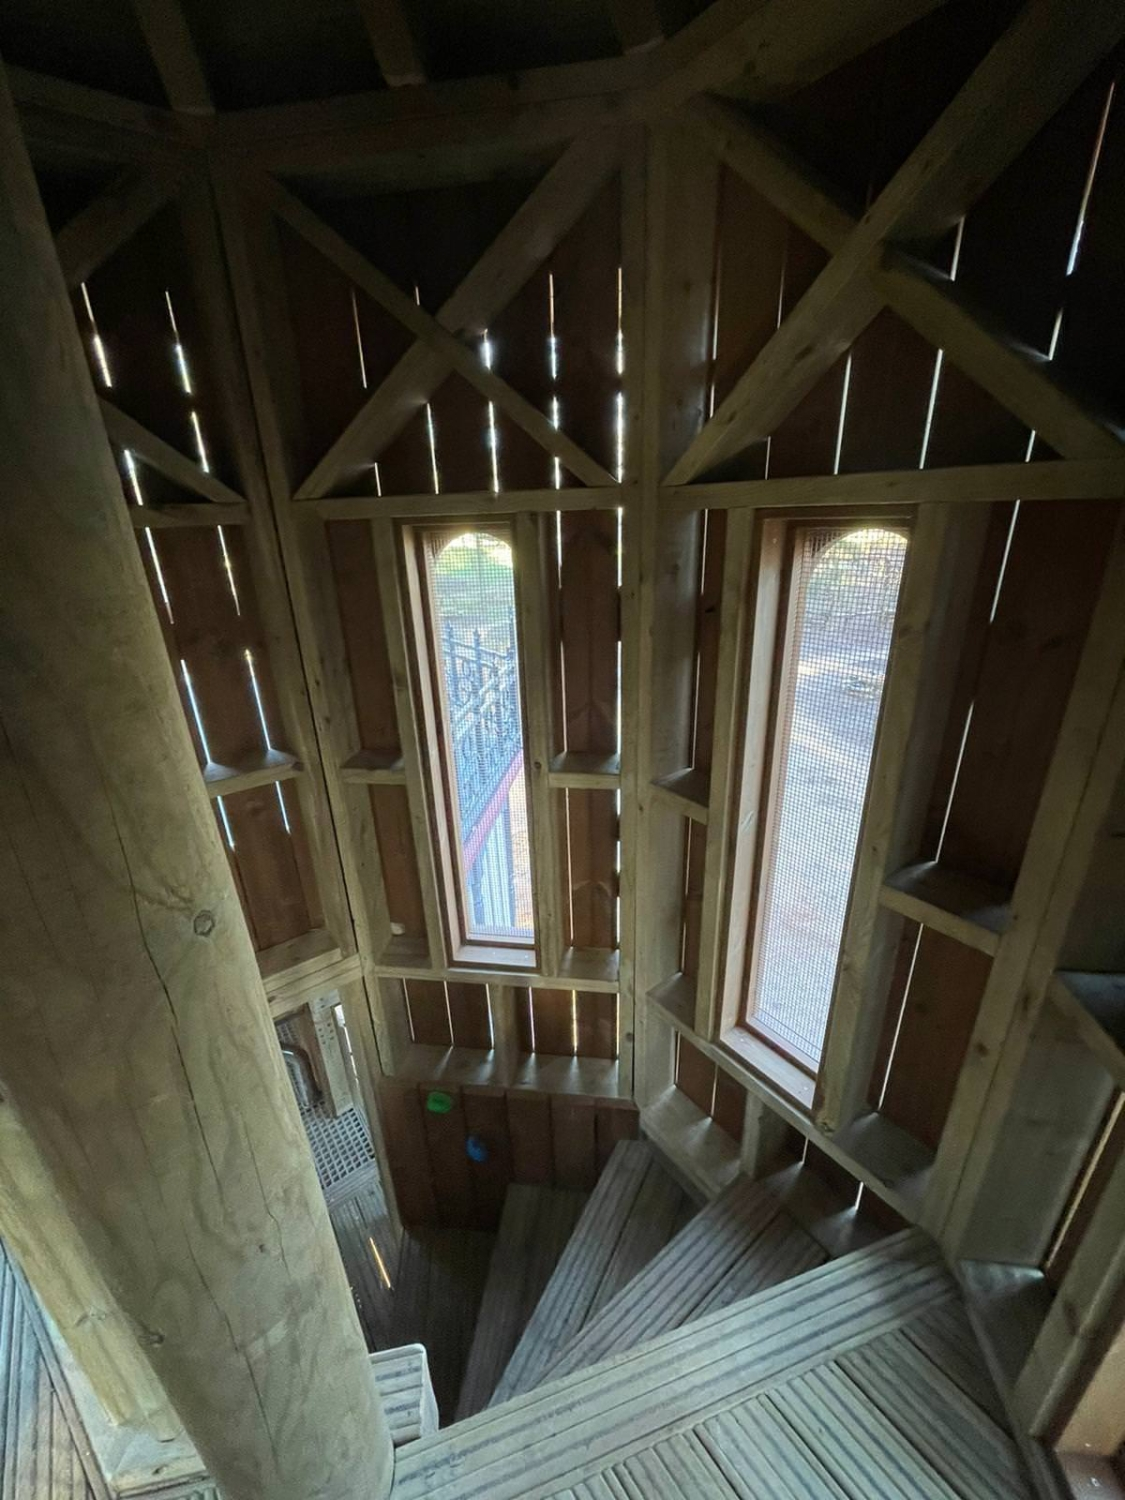 The new adventure play area at Sandringham by CAP.Co stairway and window detail